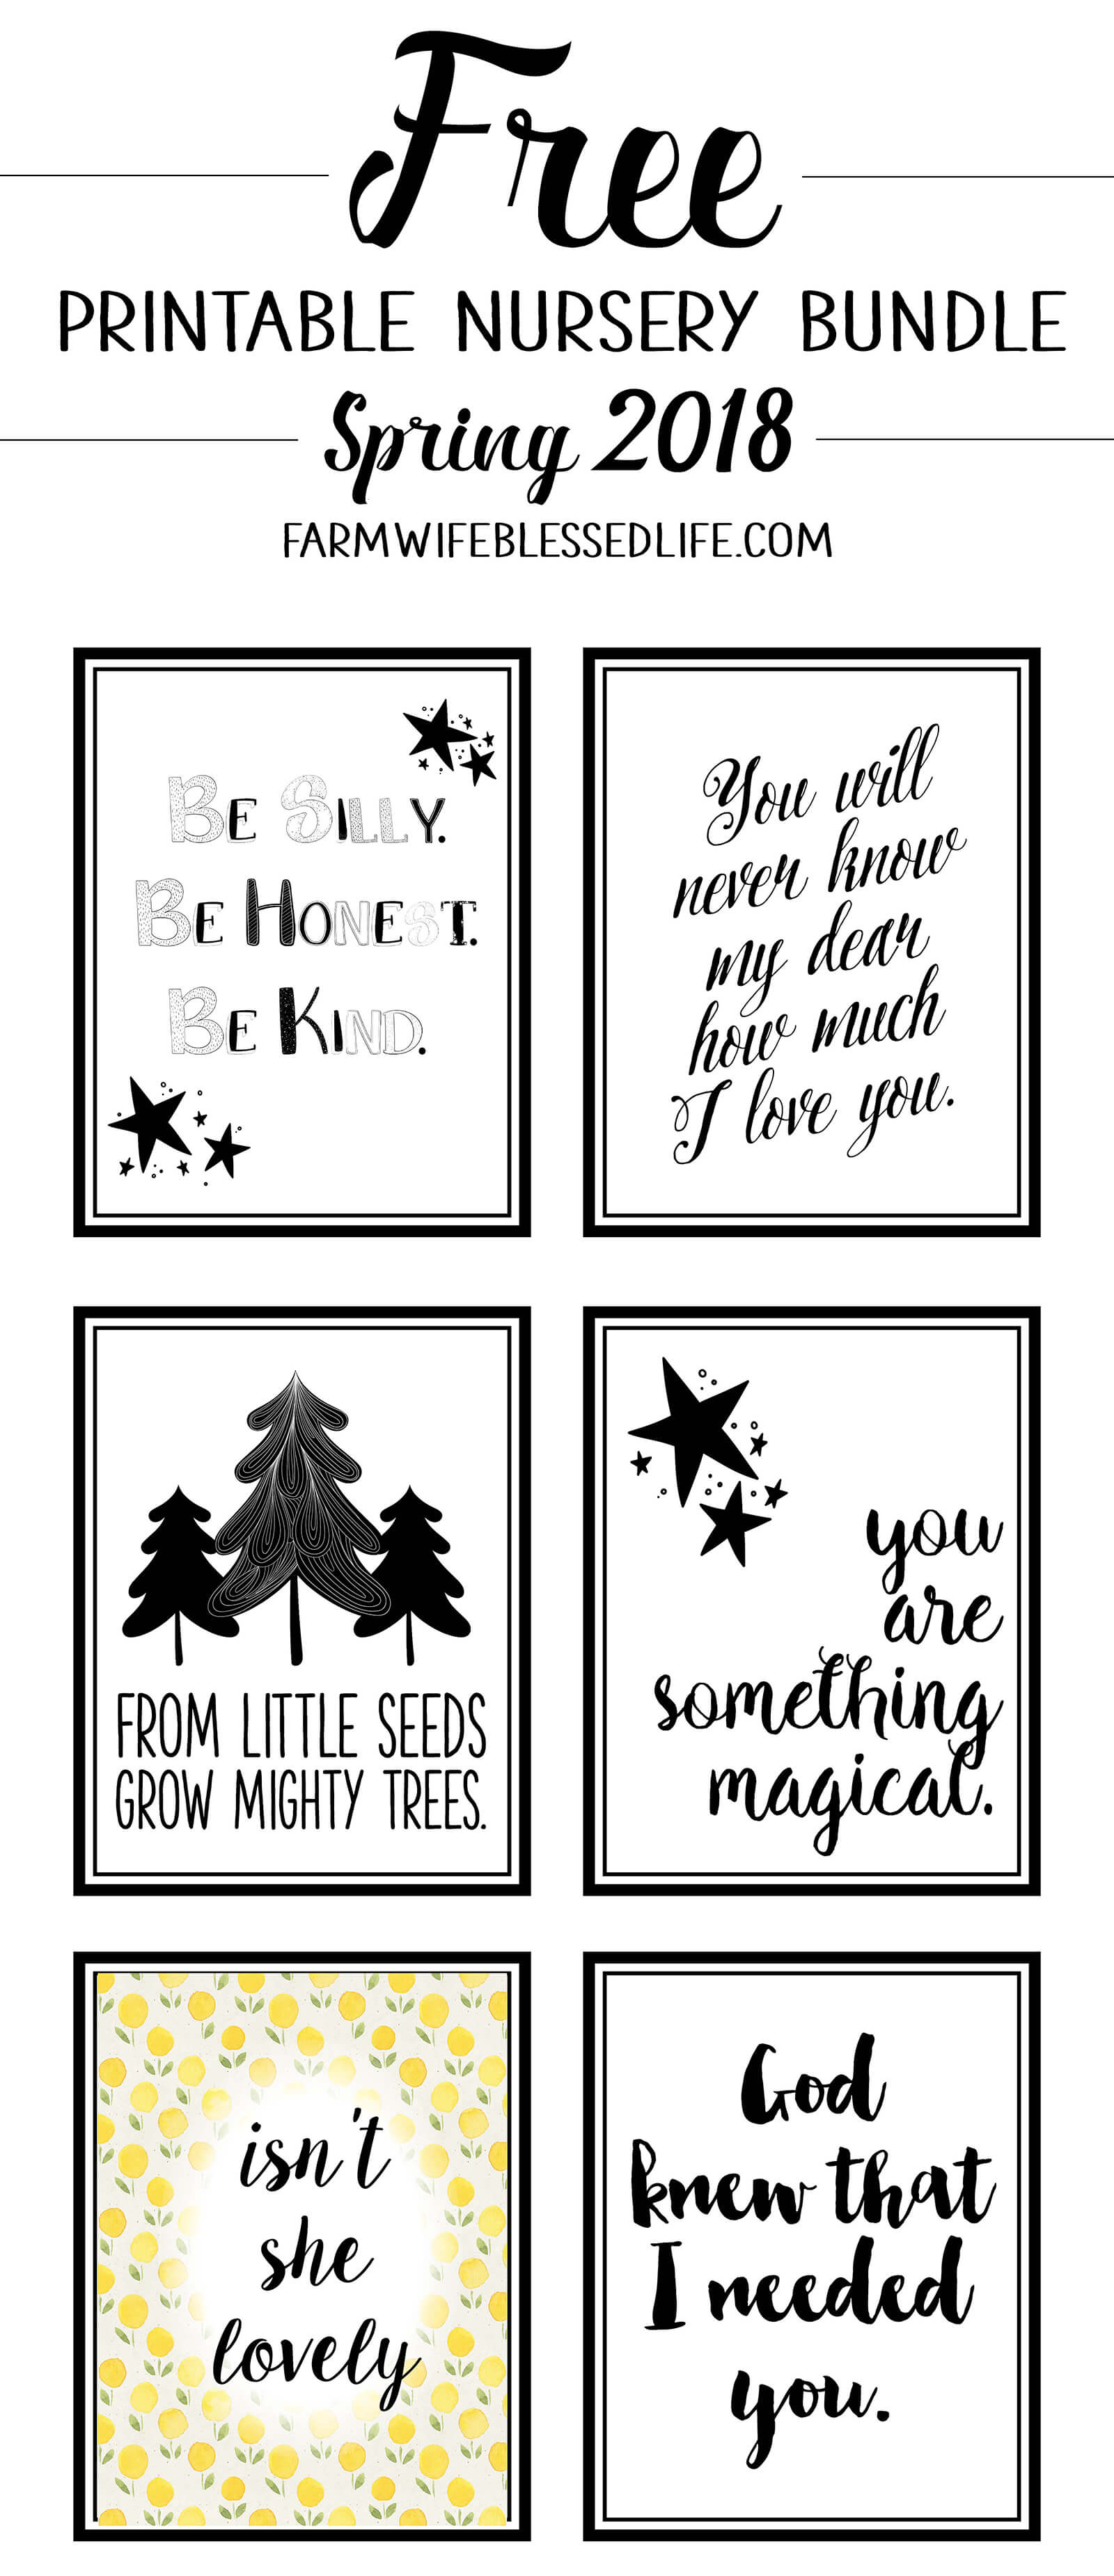 photograph regarding Free Printable Nursery Art named Totally free Nursery Printables - Spring 2018 - Farm Spouse Fortunate Everyday living